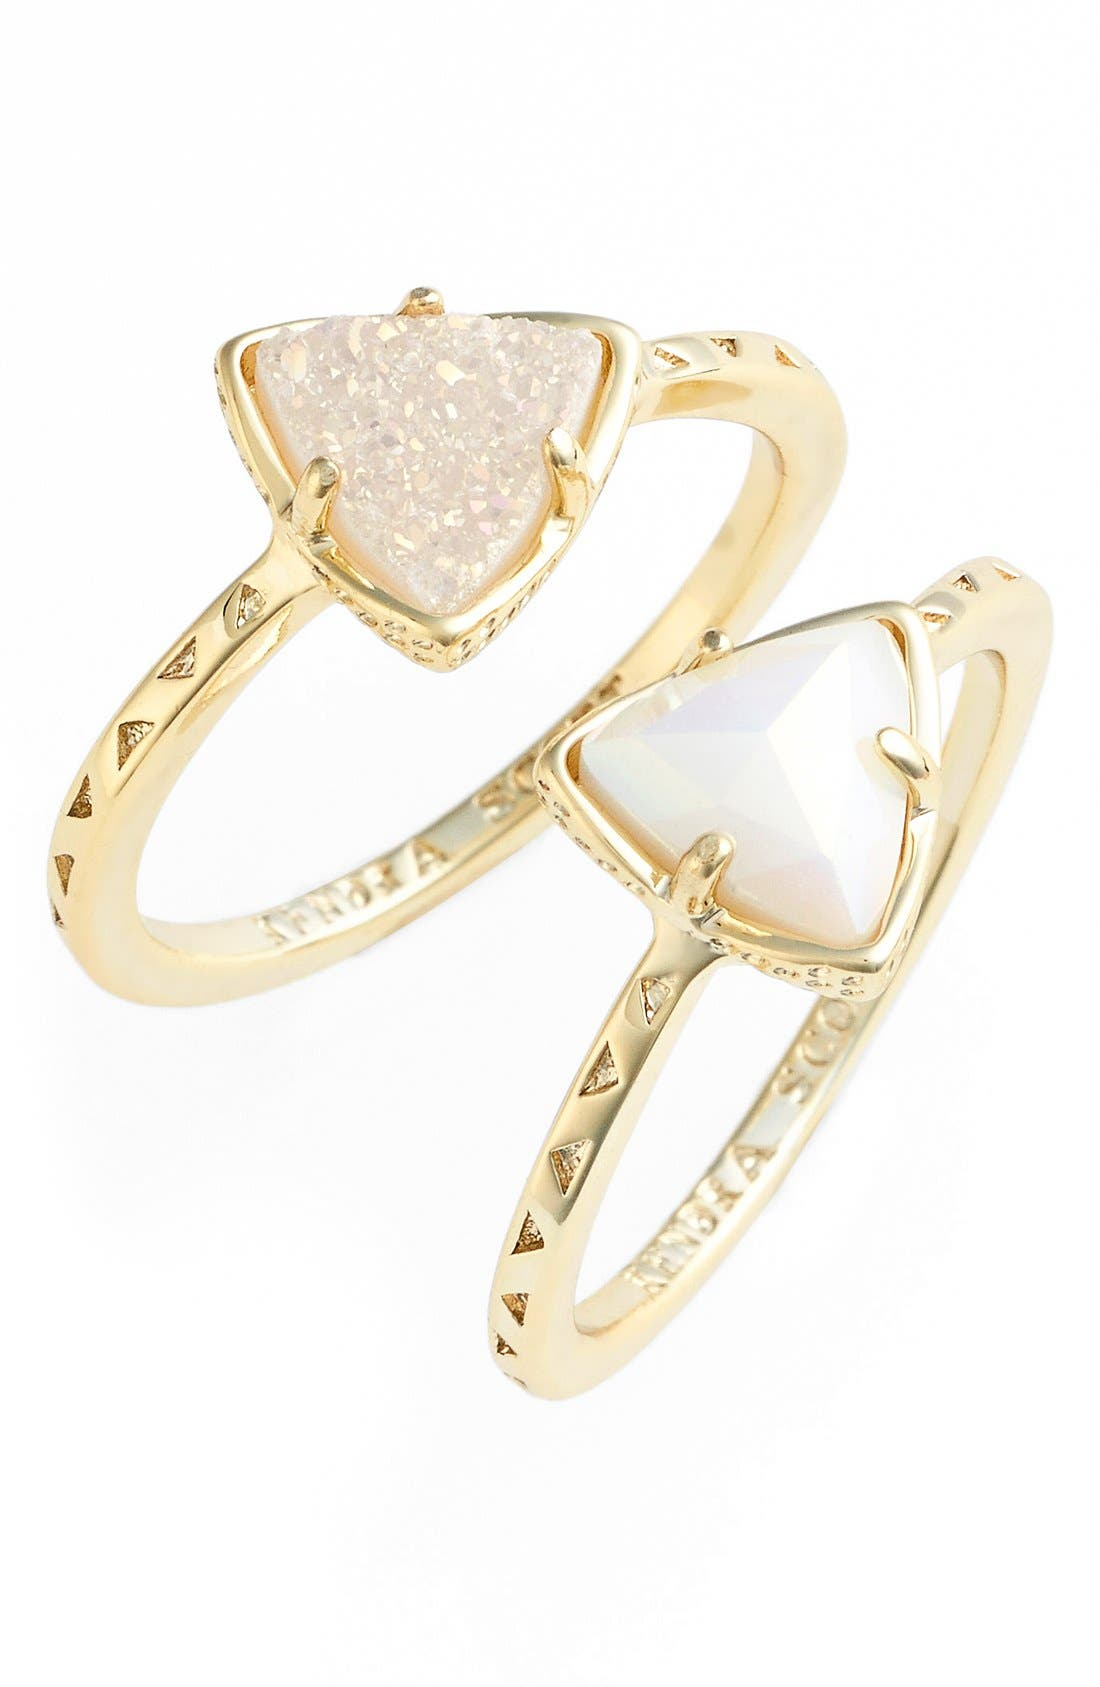 Main Image - Kendra Scott 'Anna' Triangle Rings (Set of 2)